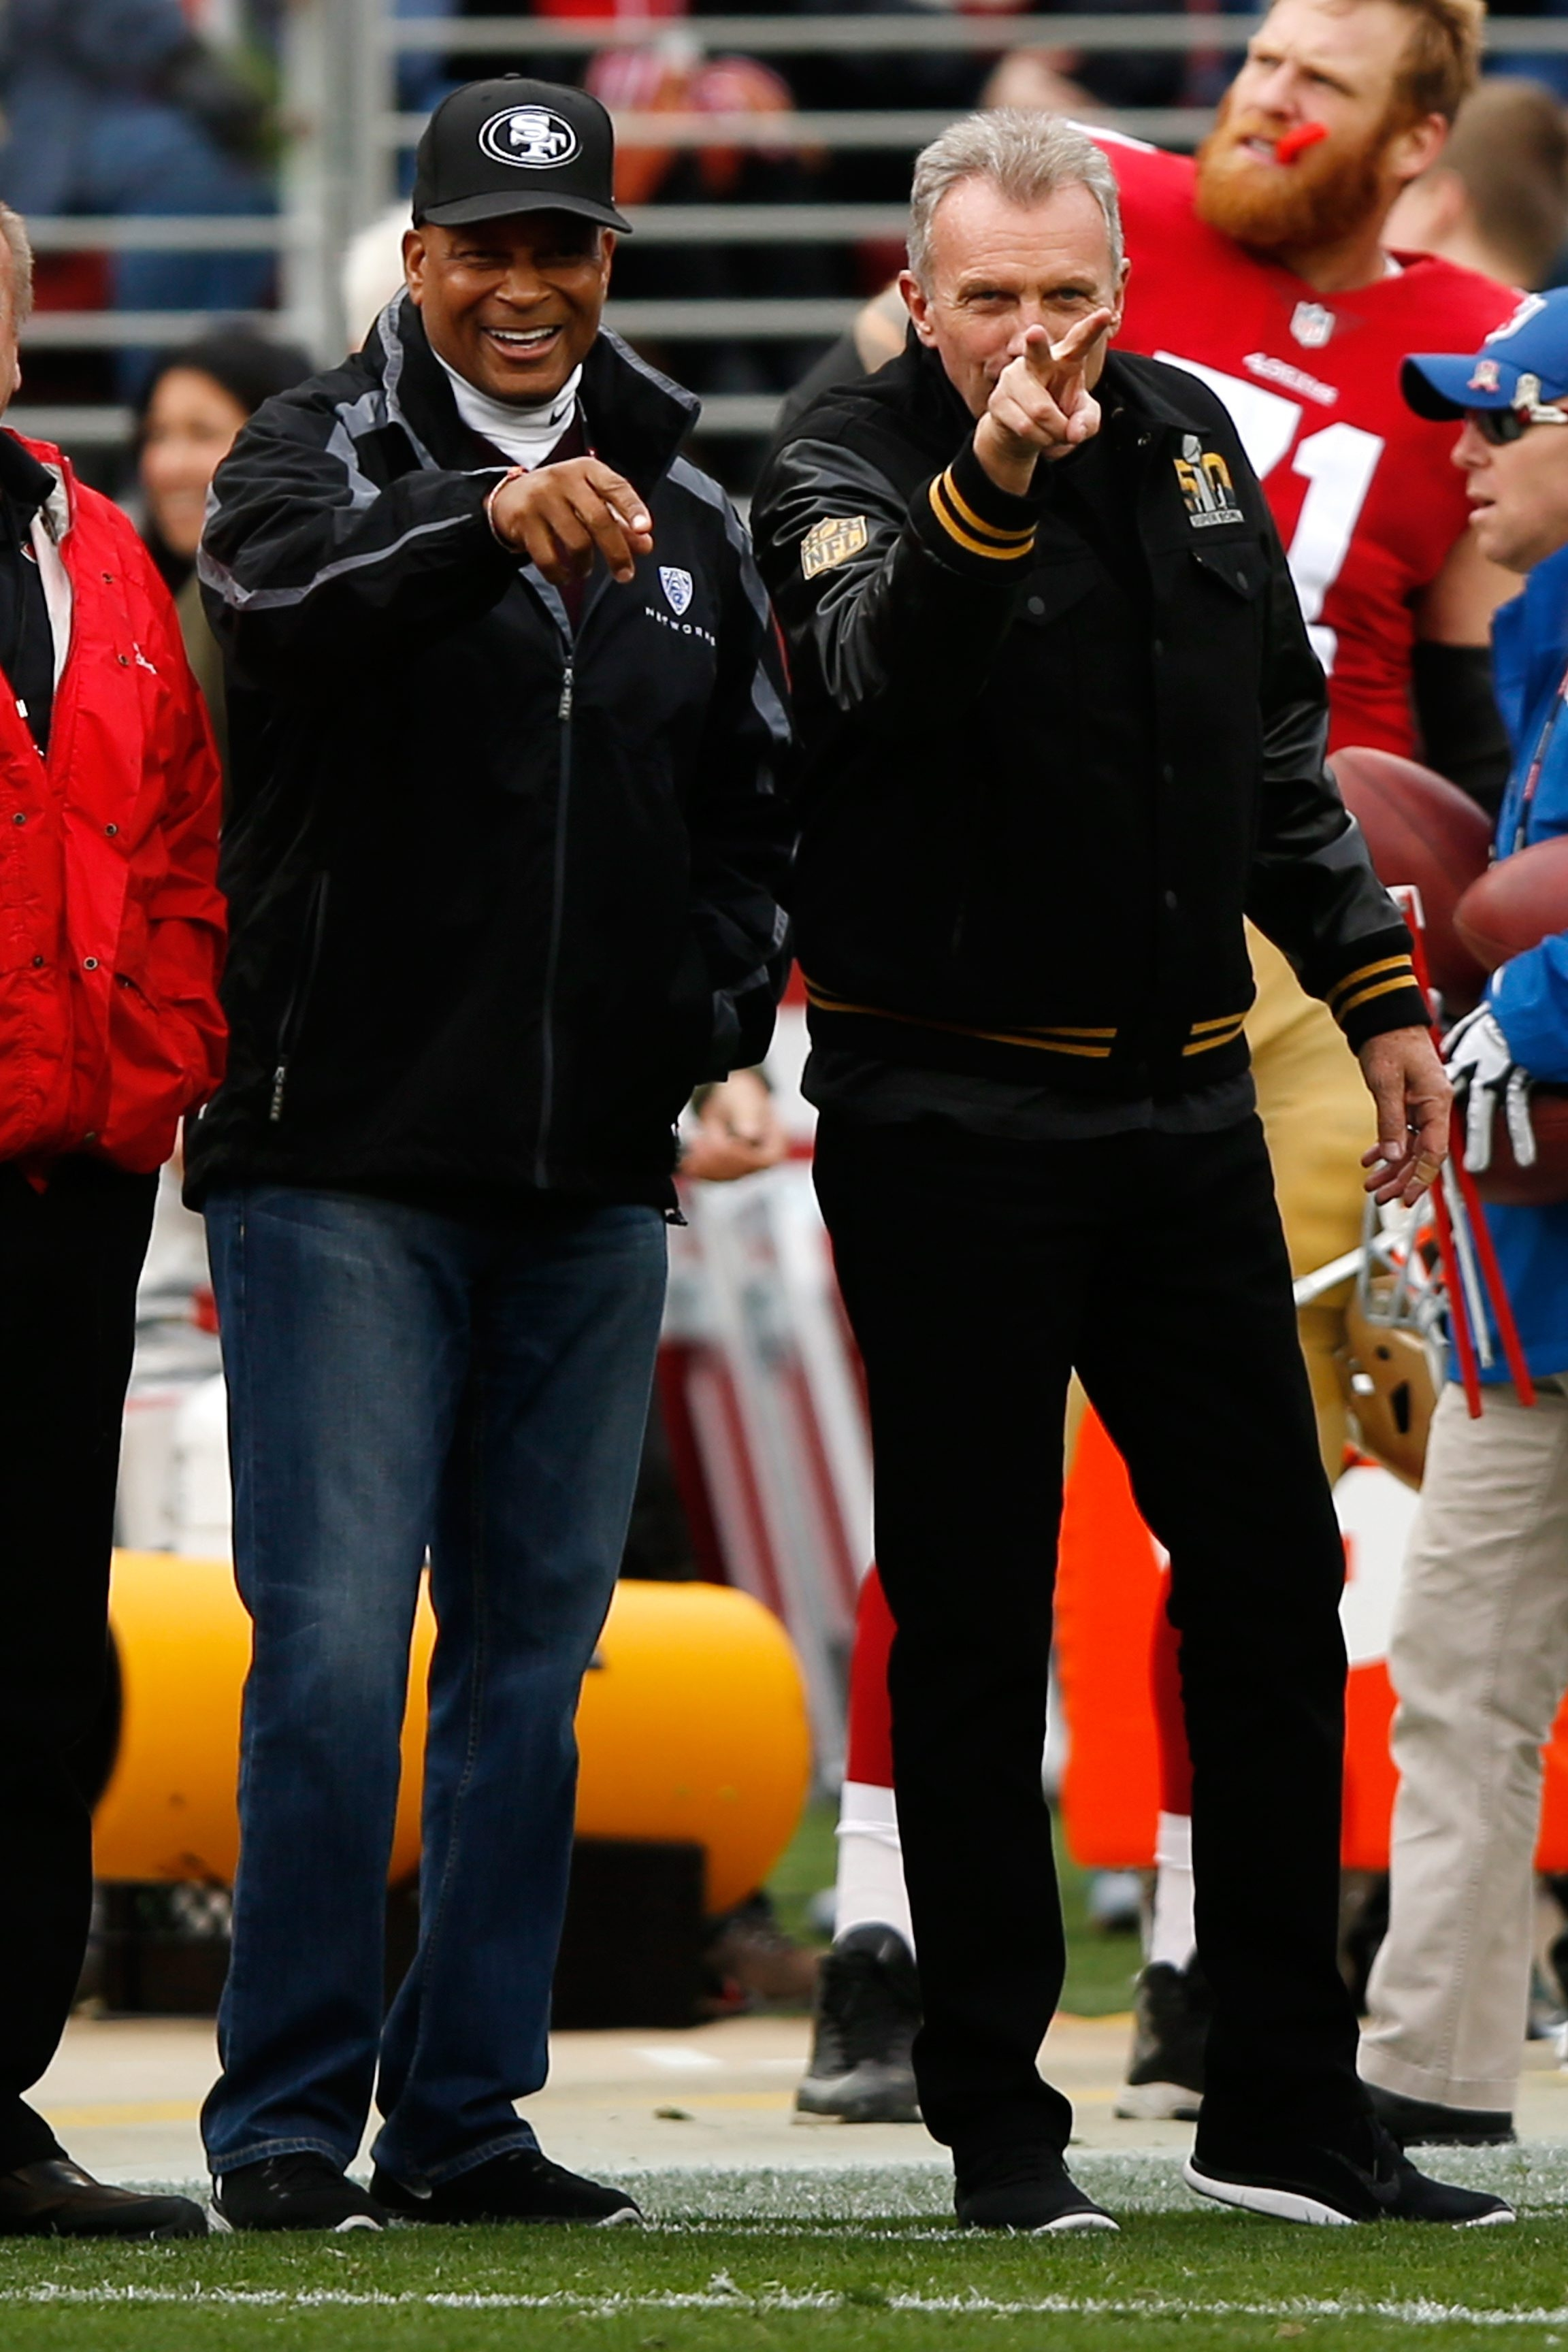 Former San Francisco 49ers Ronnie Lott, left, and Joe Montana will always be remembered for their Super Bowl performances.